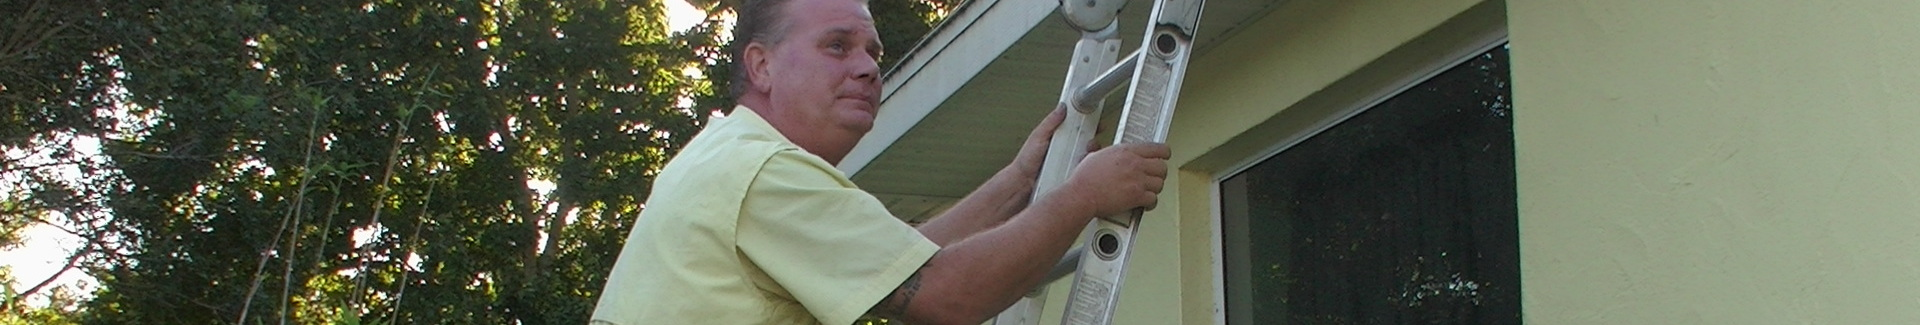 O'Brien Inspections, LLC: Services